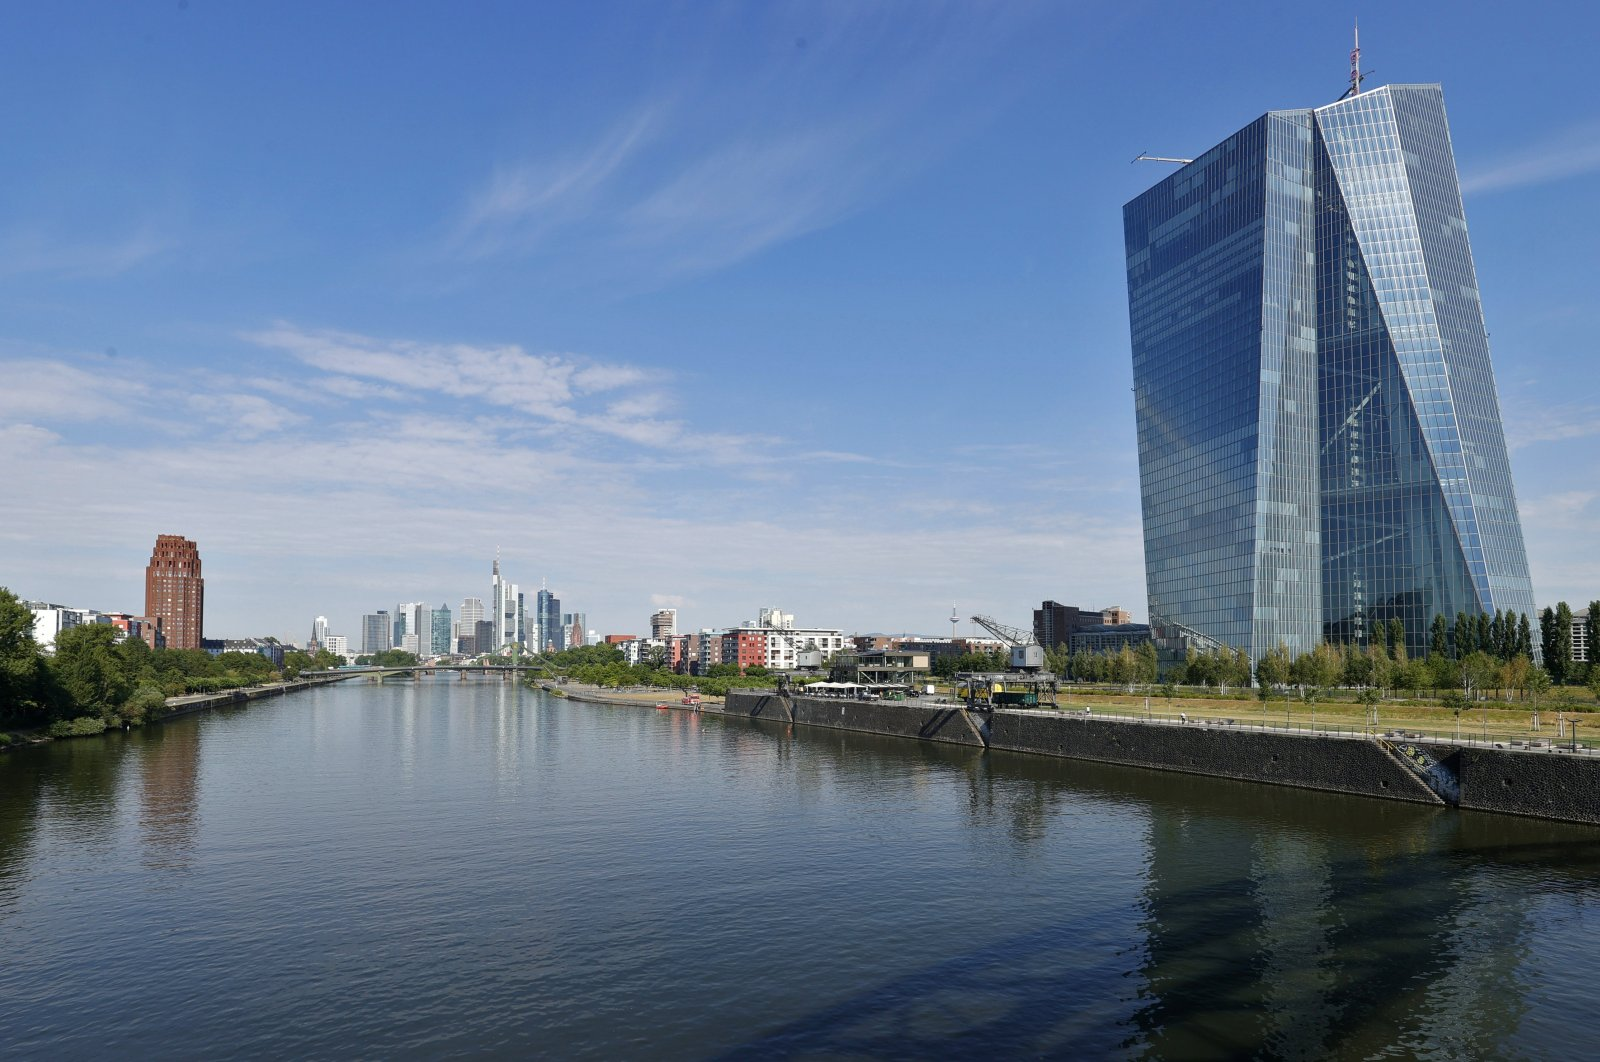 A general view of the building of the European Central Bank (ECB) in Frankfurt am Main, Germany, July 14, 2020. (EPA Photo)